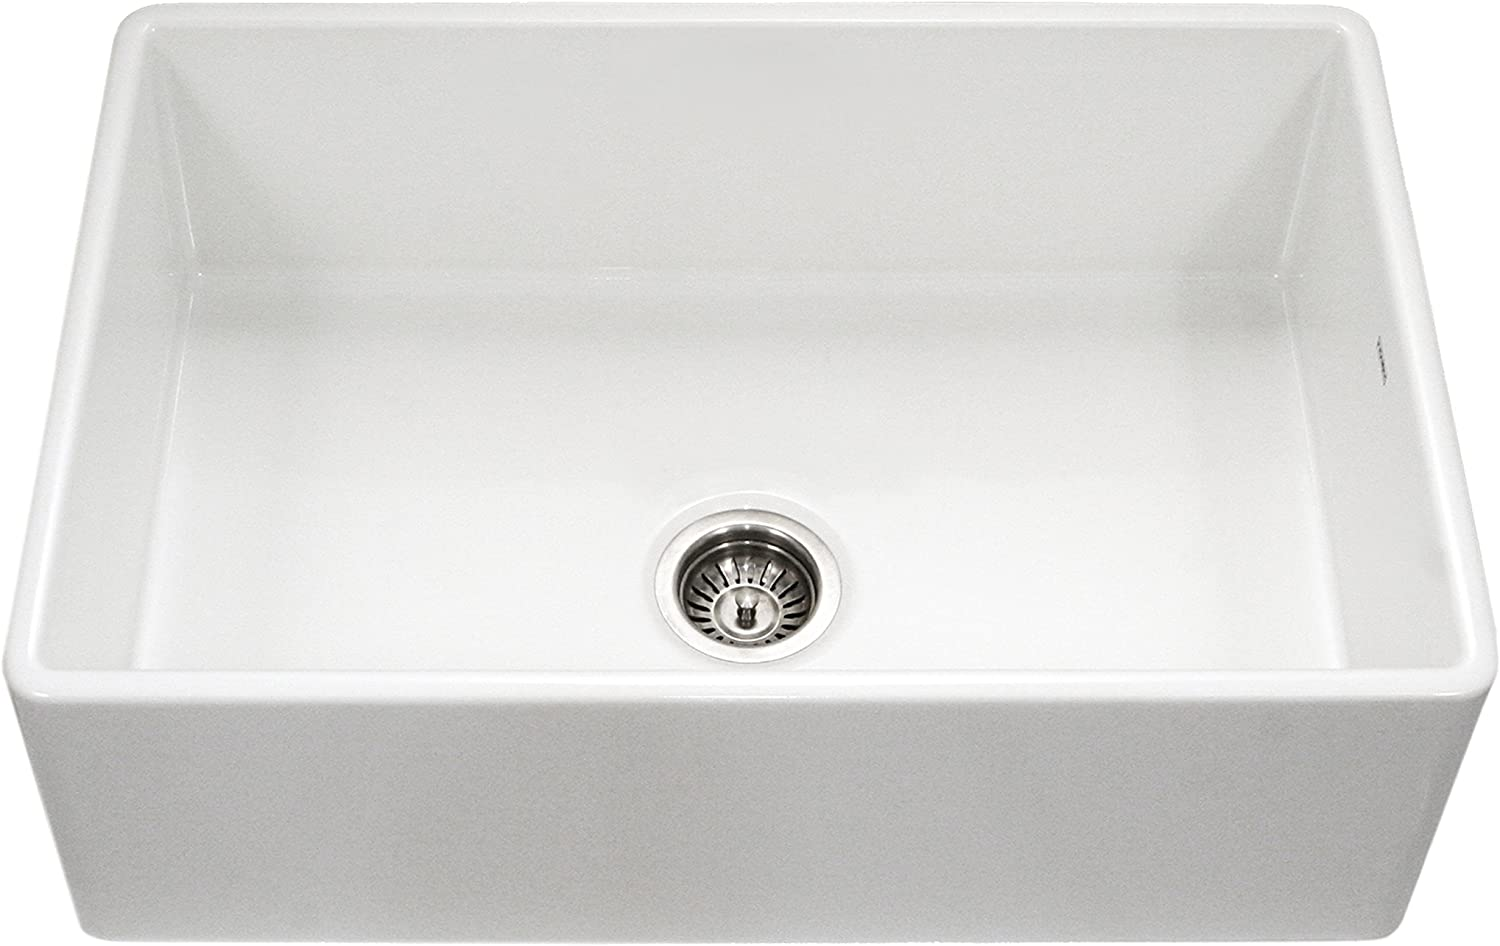 Houzer PTG-4300 WH Platus Series Apron-Front Fireclay Single Bowl Kitchen Sink, 33 , White